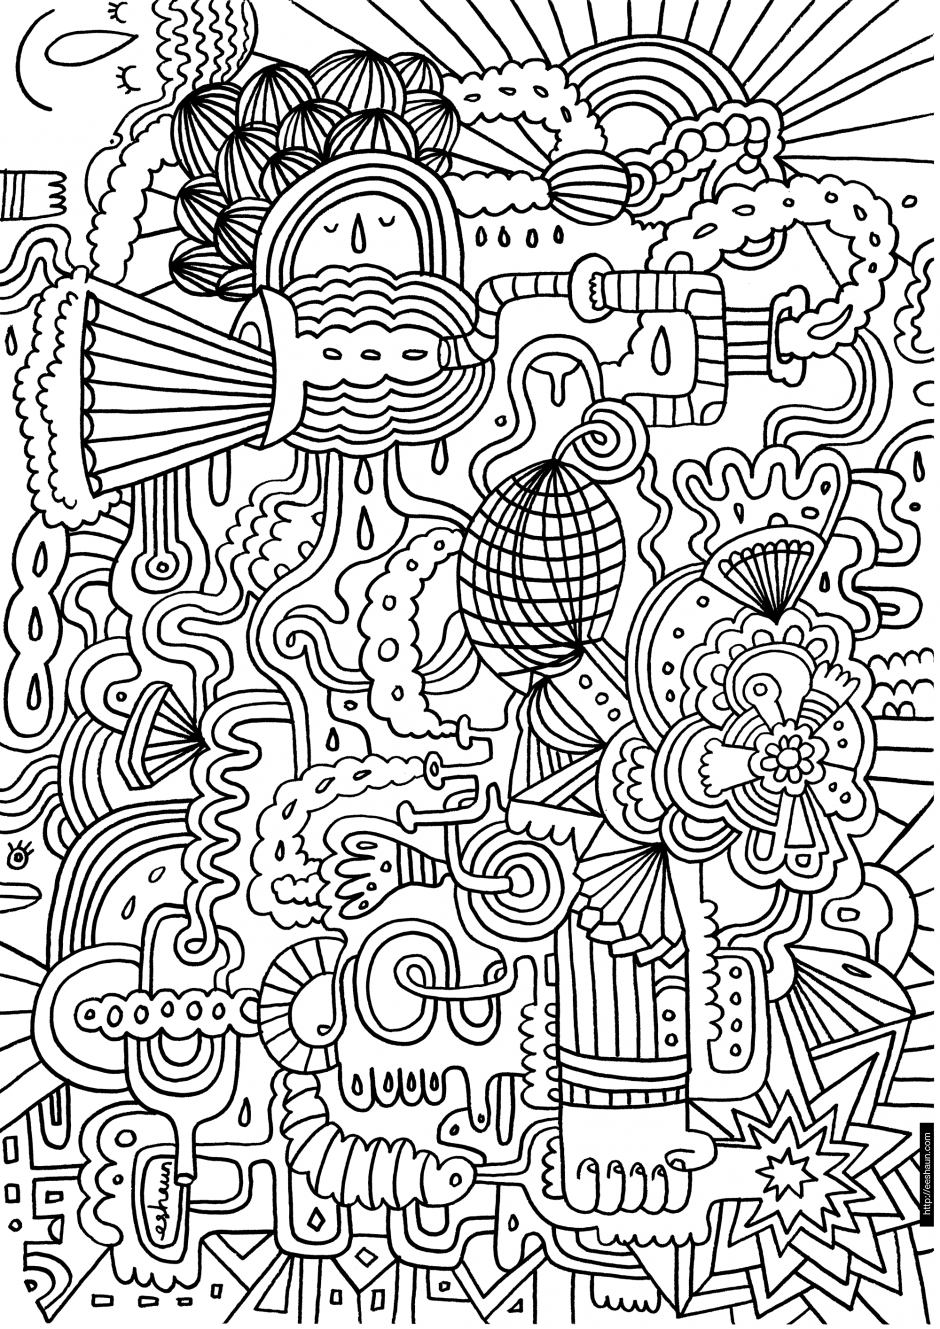 Coloring_Pages_Of_Flowers_For_Teenagers_Difficult_02